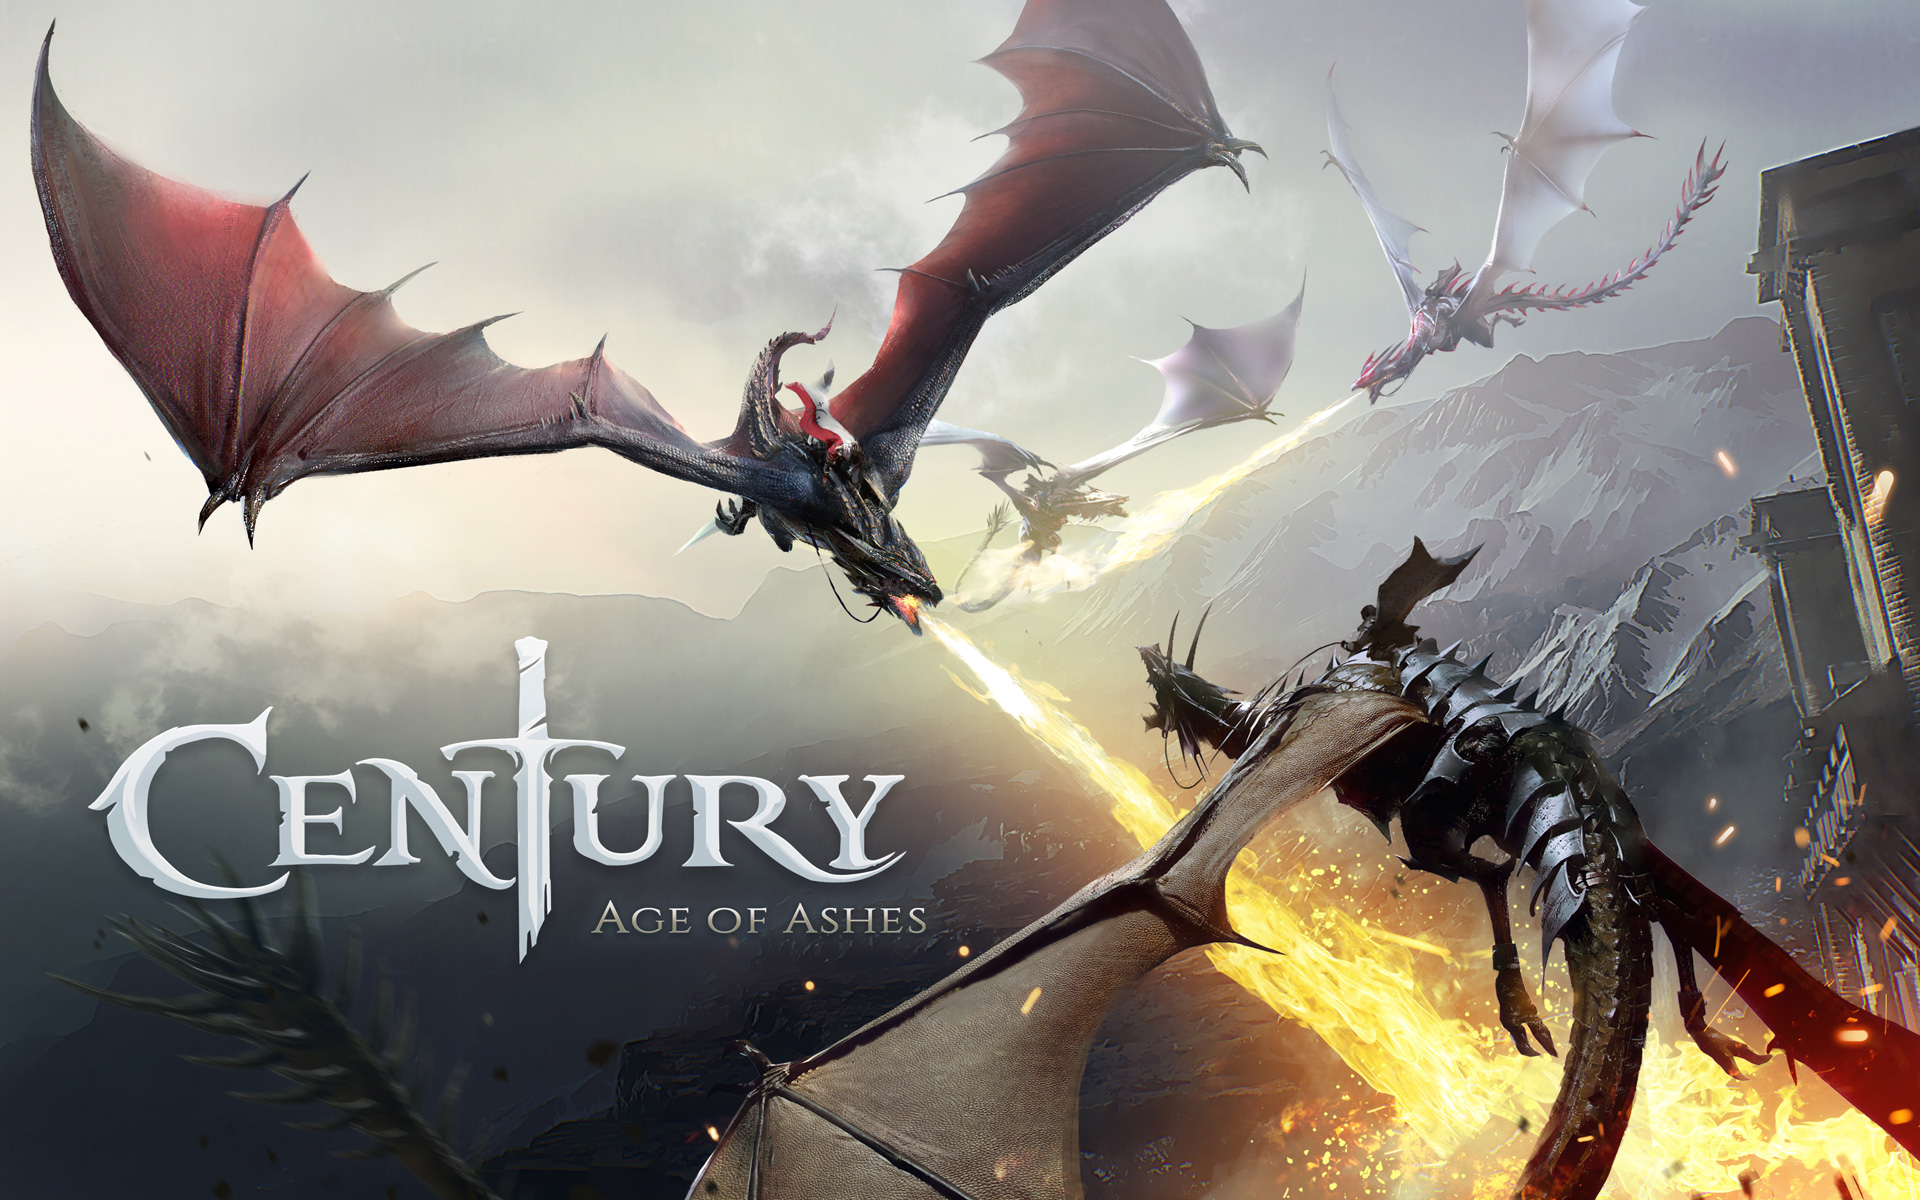 Free Century: Age of Ashes Wallpaper in 1920x1200